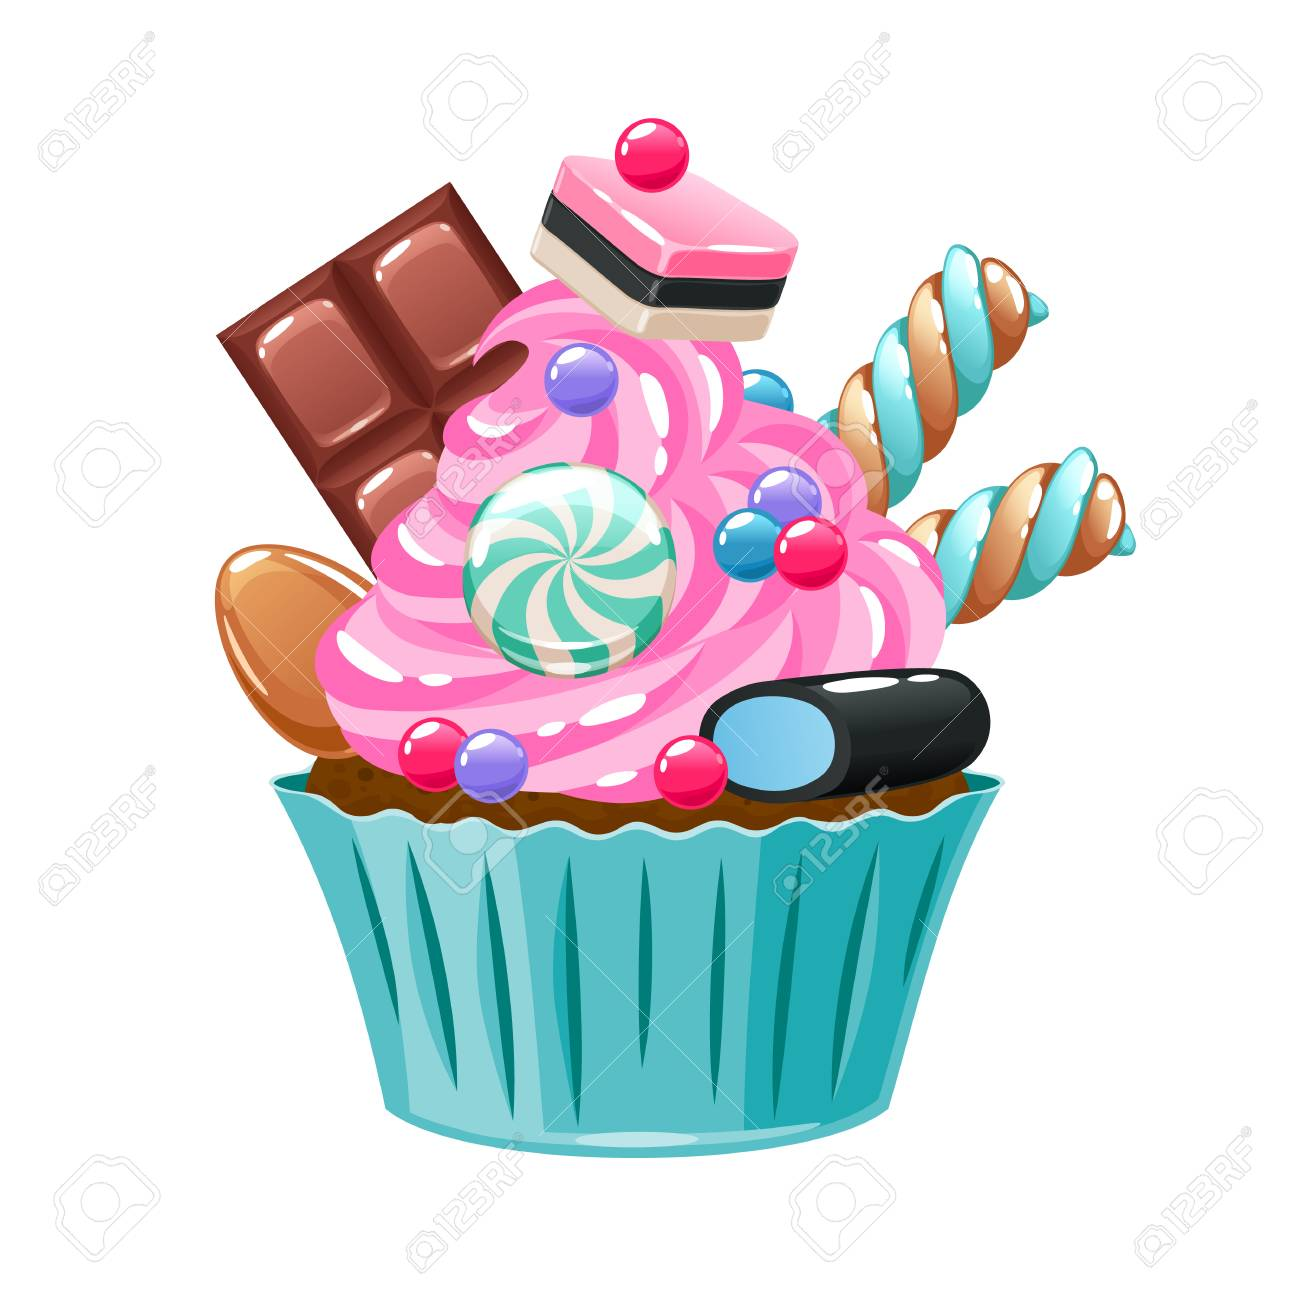 Colorful Cupcake Decorated With Sweets And Candies Royalty Free